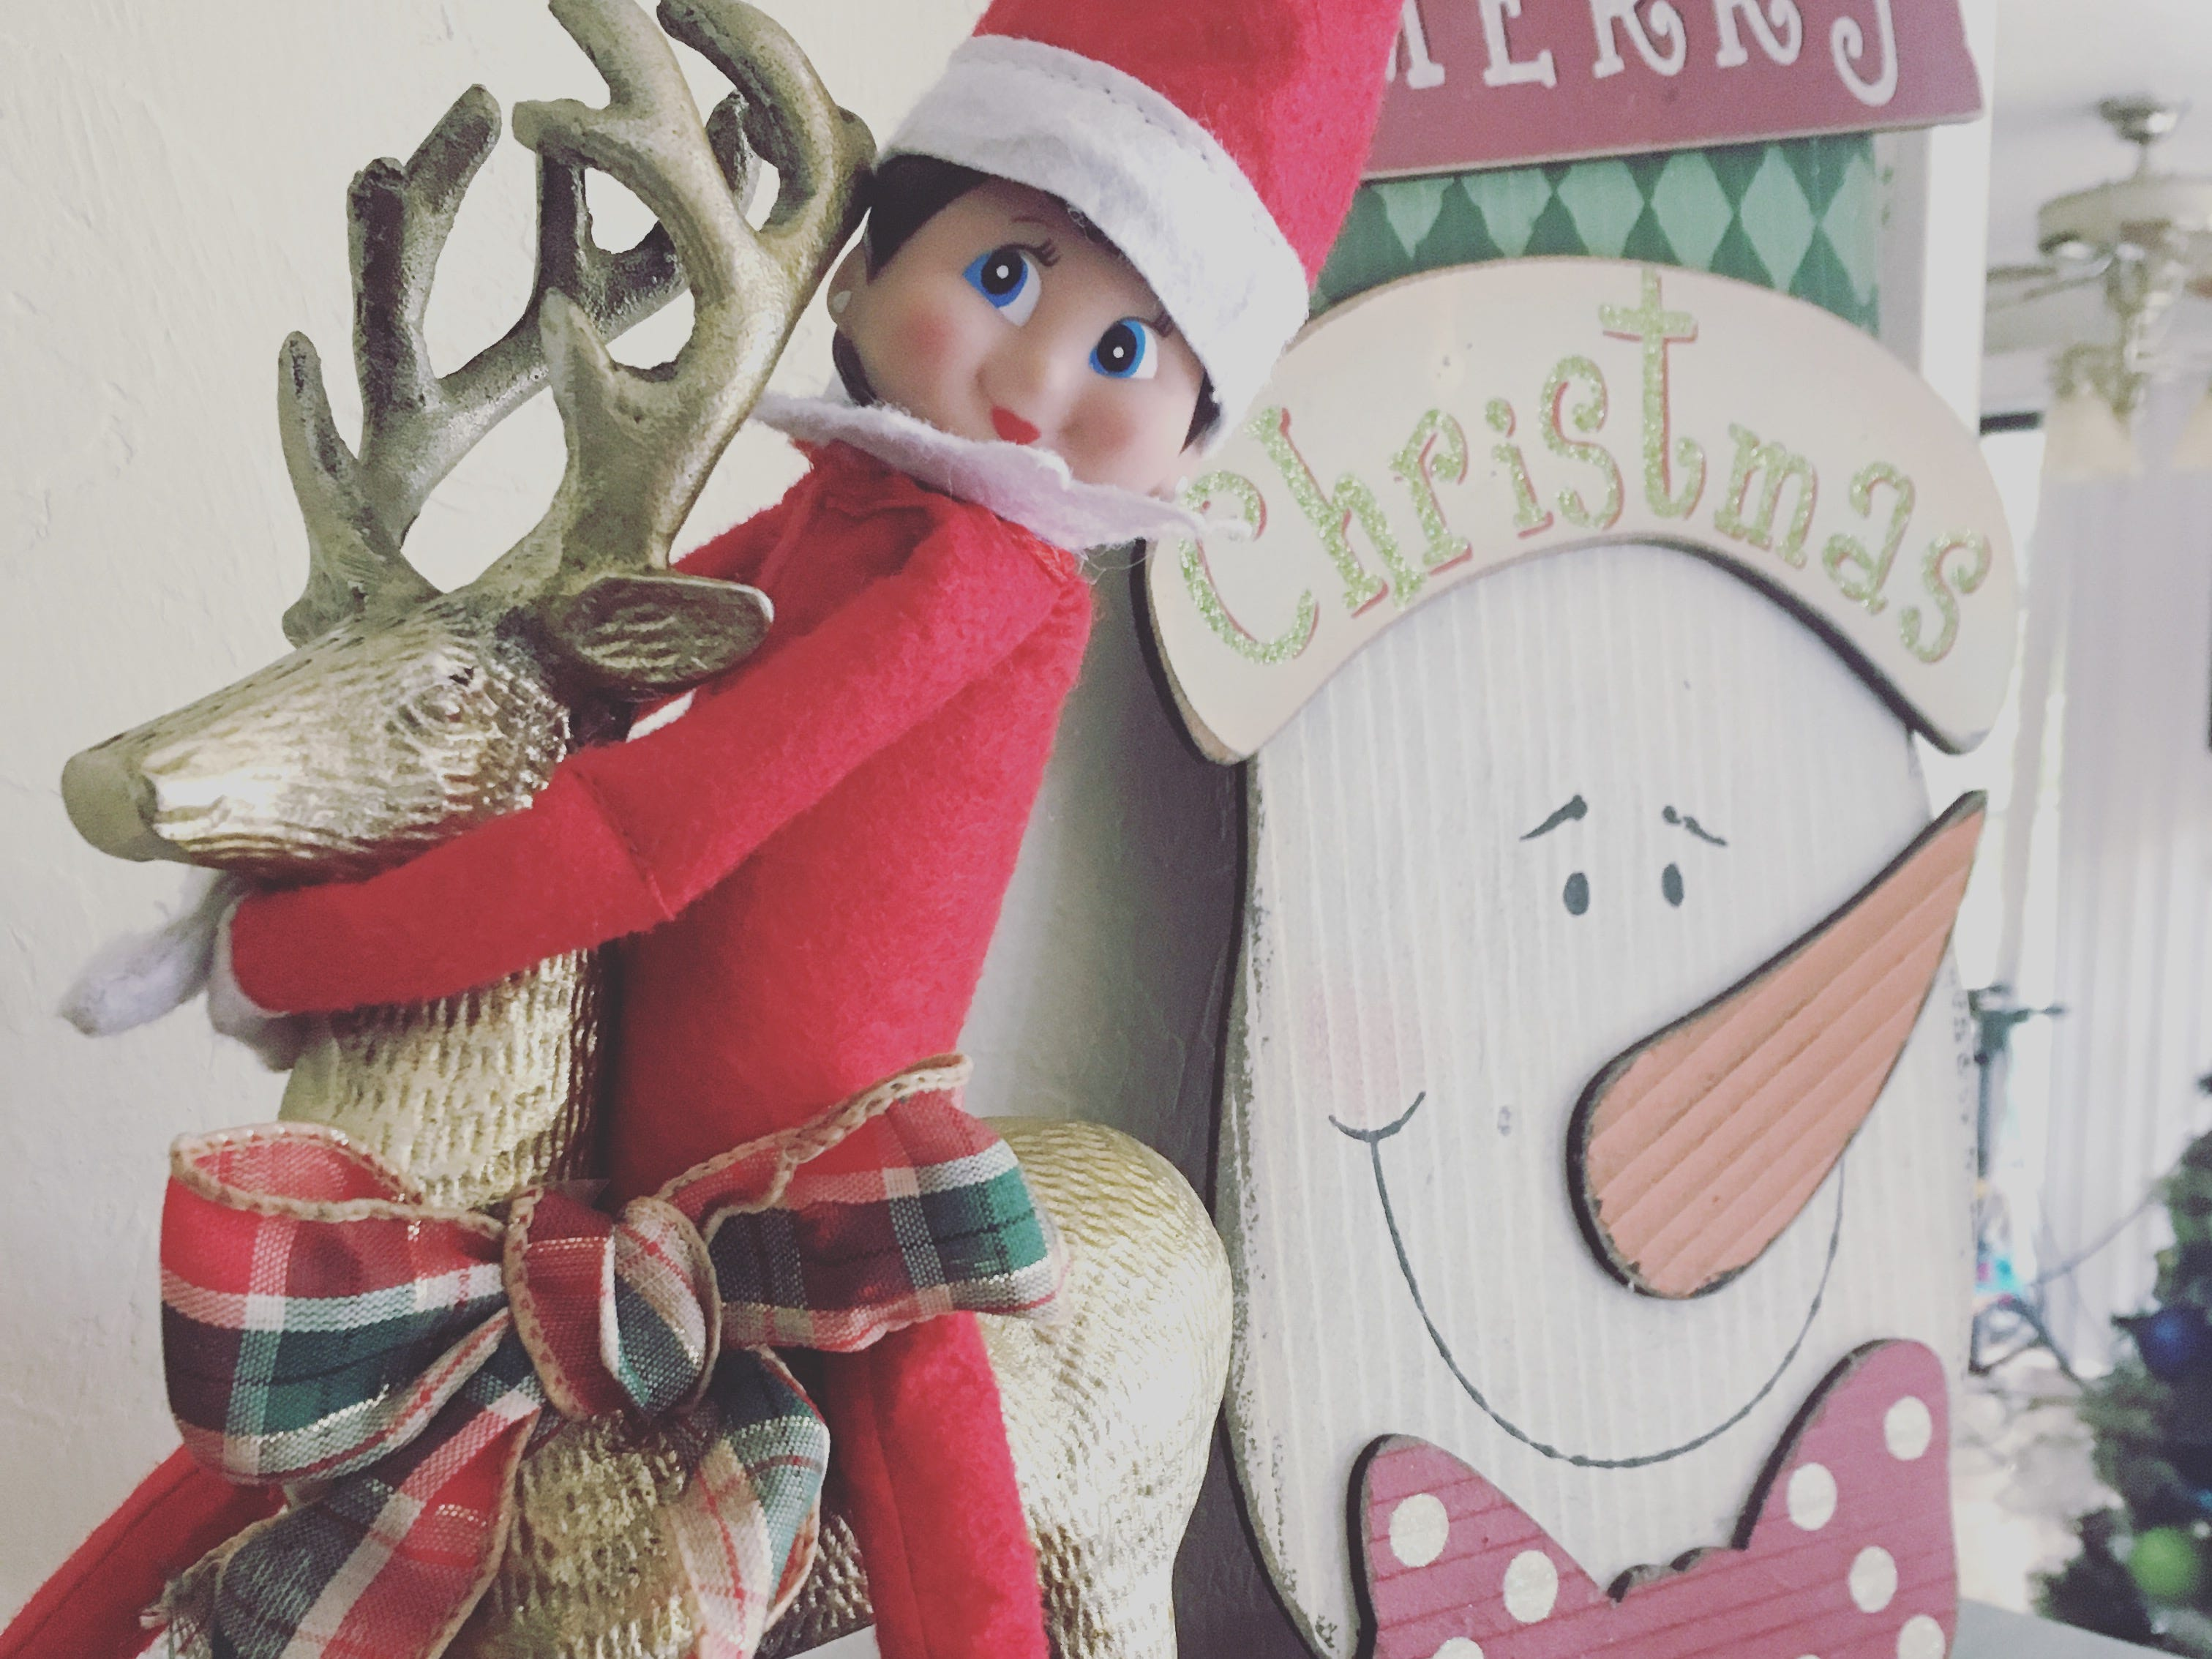 This is Ellen. Ellen is taking a ride on a reindeer and enjoying the festive décor.